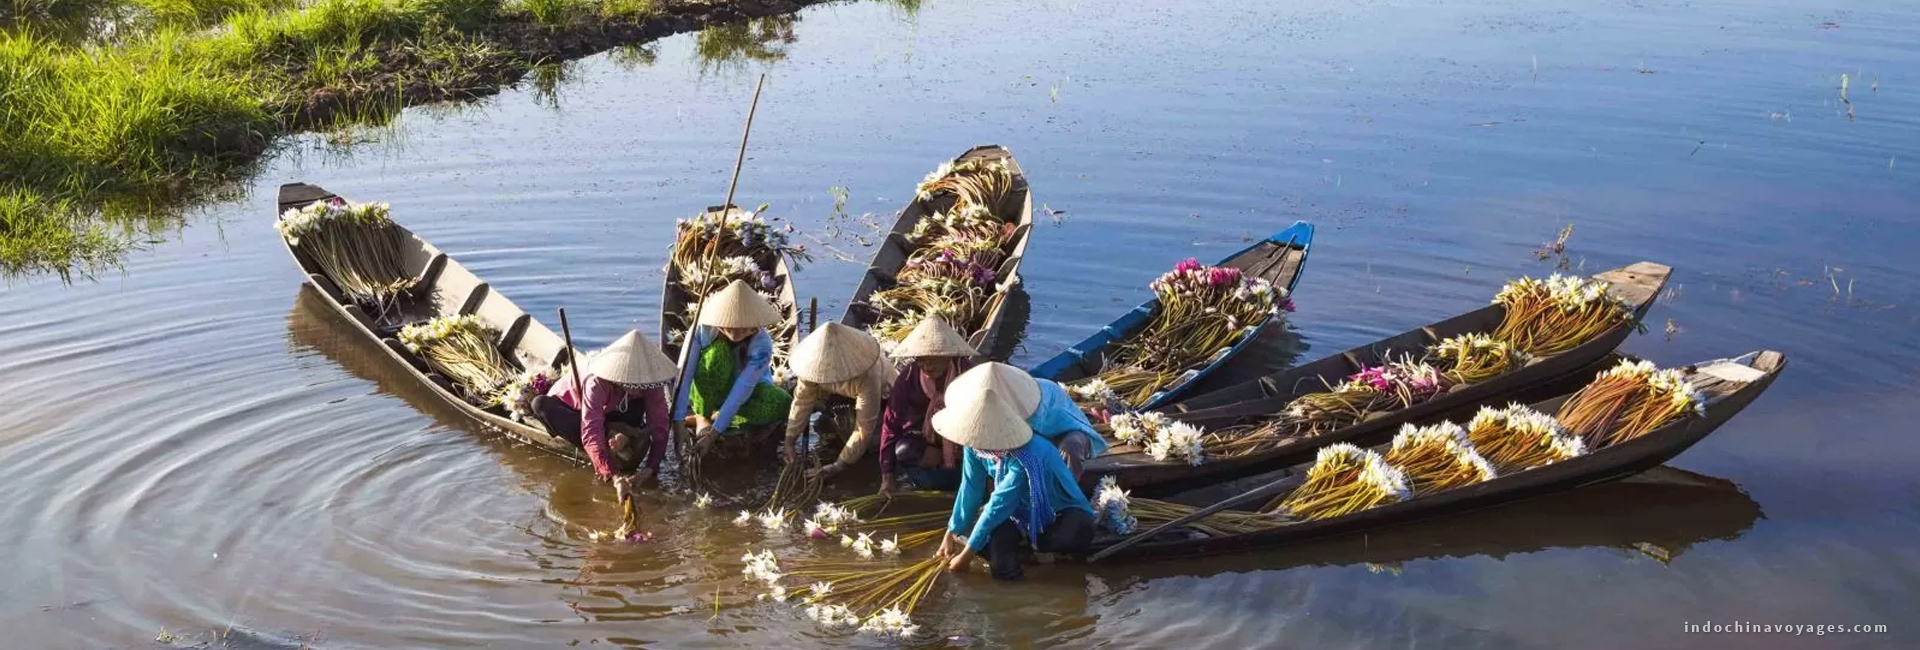 A journey along the Mekong river is genuinely exceptional